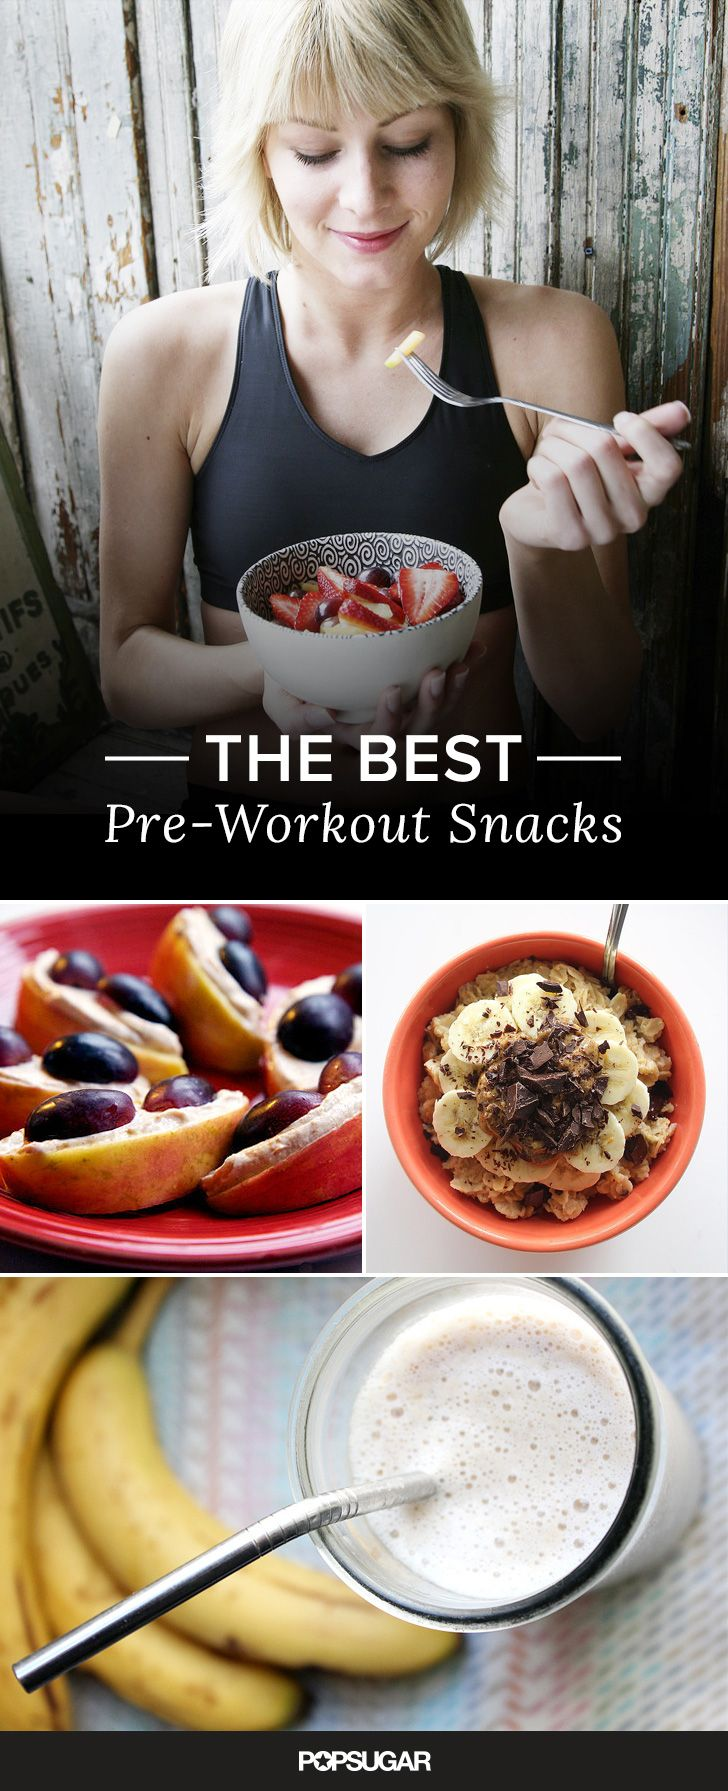 You've got to have energy to have an effective workout, so let your pre-workout snack help you push yourself to do your best. What works for you the best will depend on when you eat your snack as well as any stomach sensitivity issues you have, but a good rule of thumb is to make your snack a mix of mostly carbs and a little bit of protein for exercise success. Here are a few pre-workout snack ideas that do just that!